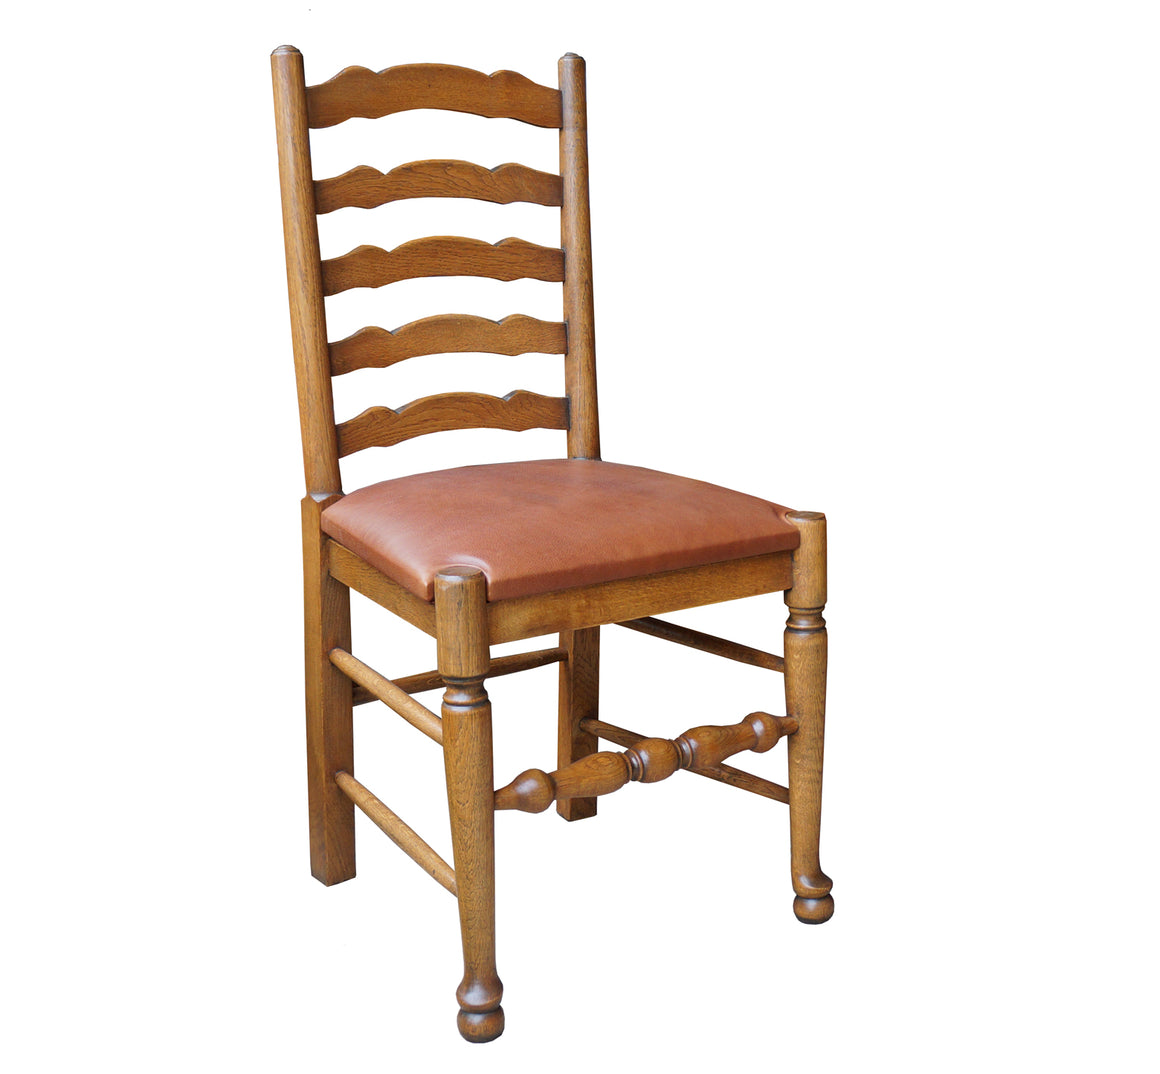 Classic English Ladder Back Dining Chair